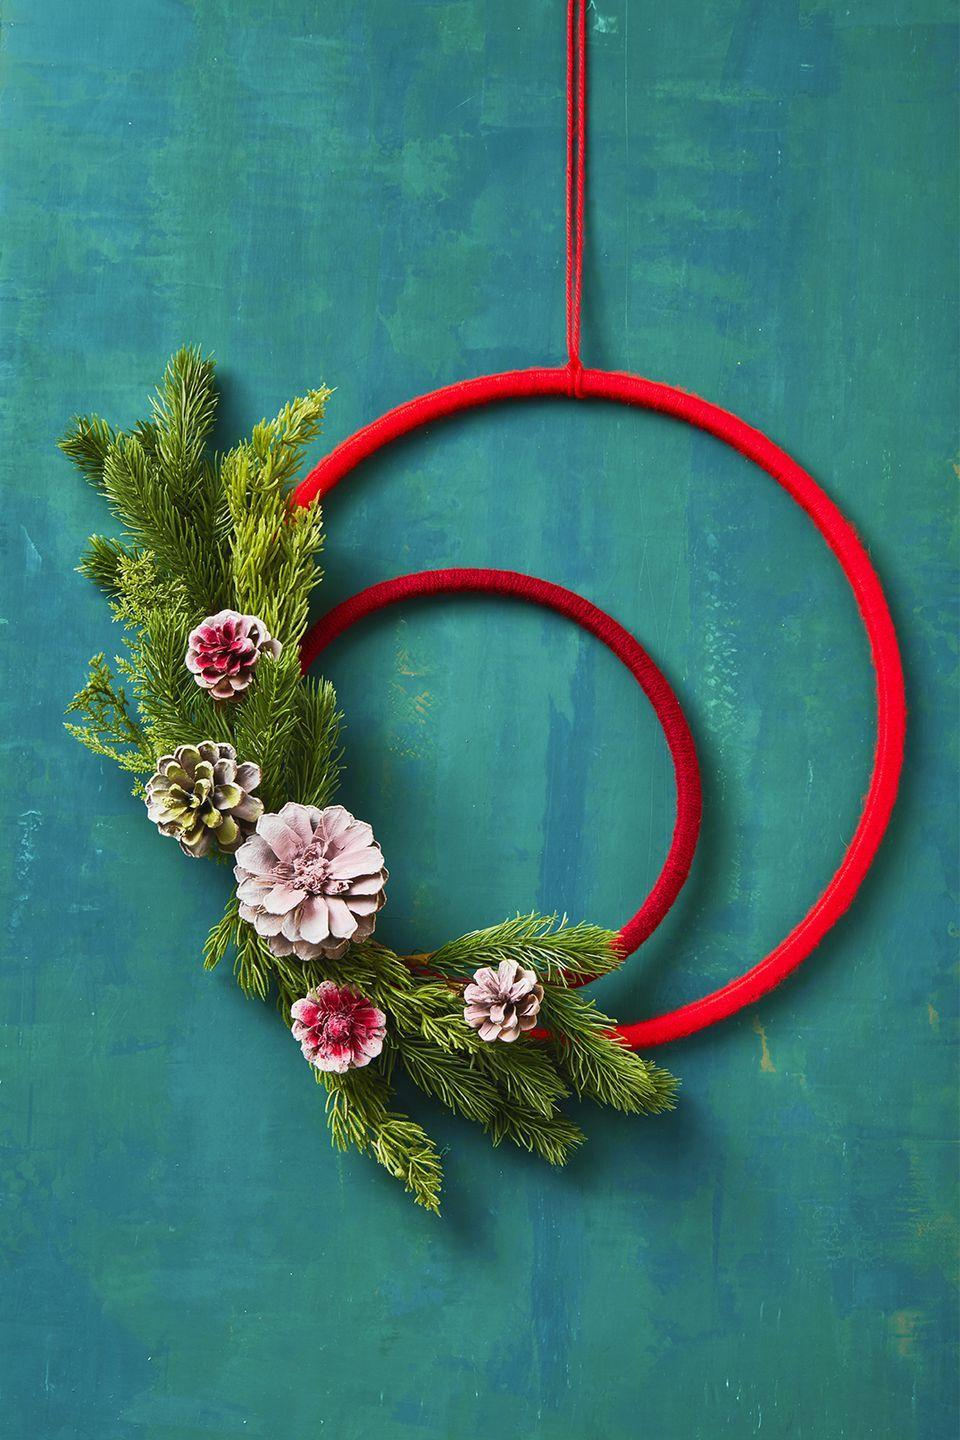 "<p>Wrap two embroidery hoops — one small, one large — with different shades of red thread, and then finish it off with fresh or faux pine branches and a medley of hand-painted pinecones. </p><p><strong>RELATED: </strong><a href=""https://www.goodhousekeeping.com/home/craft-ideas/how-to/g1488/diy-winter-wreaths/"" rel=""nofollow noopener"" target=""_blank"" data-ylk=""slk:Winter Wreaths That You Can DIY"" class=""link rapid-noclick-resp"">Winter Wreaths That You Can DIY </a></p>"